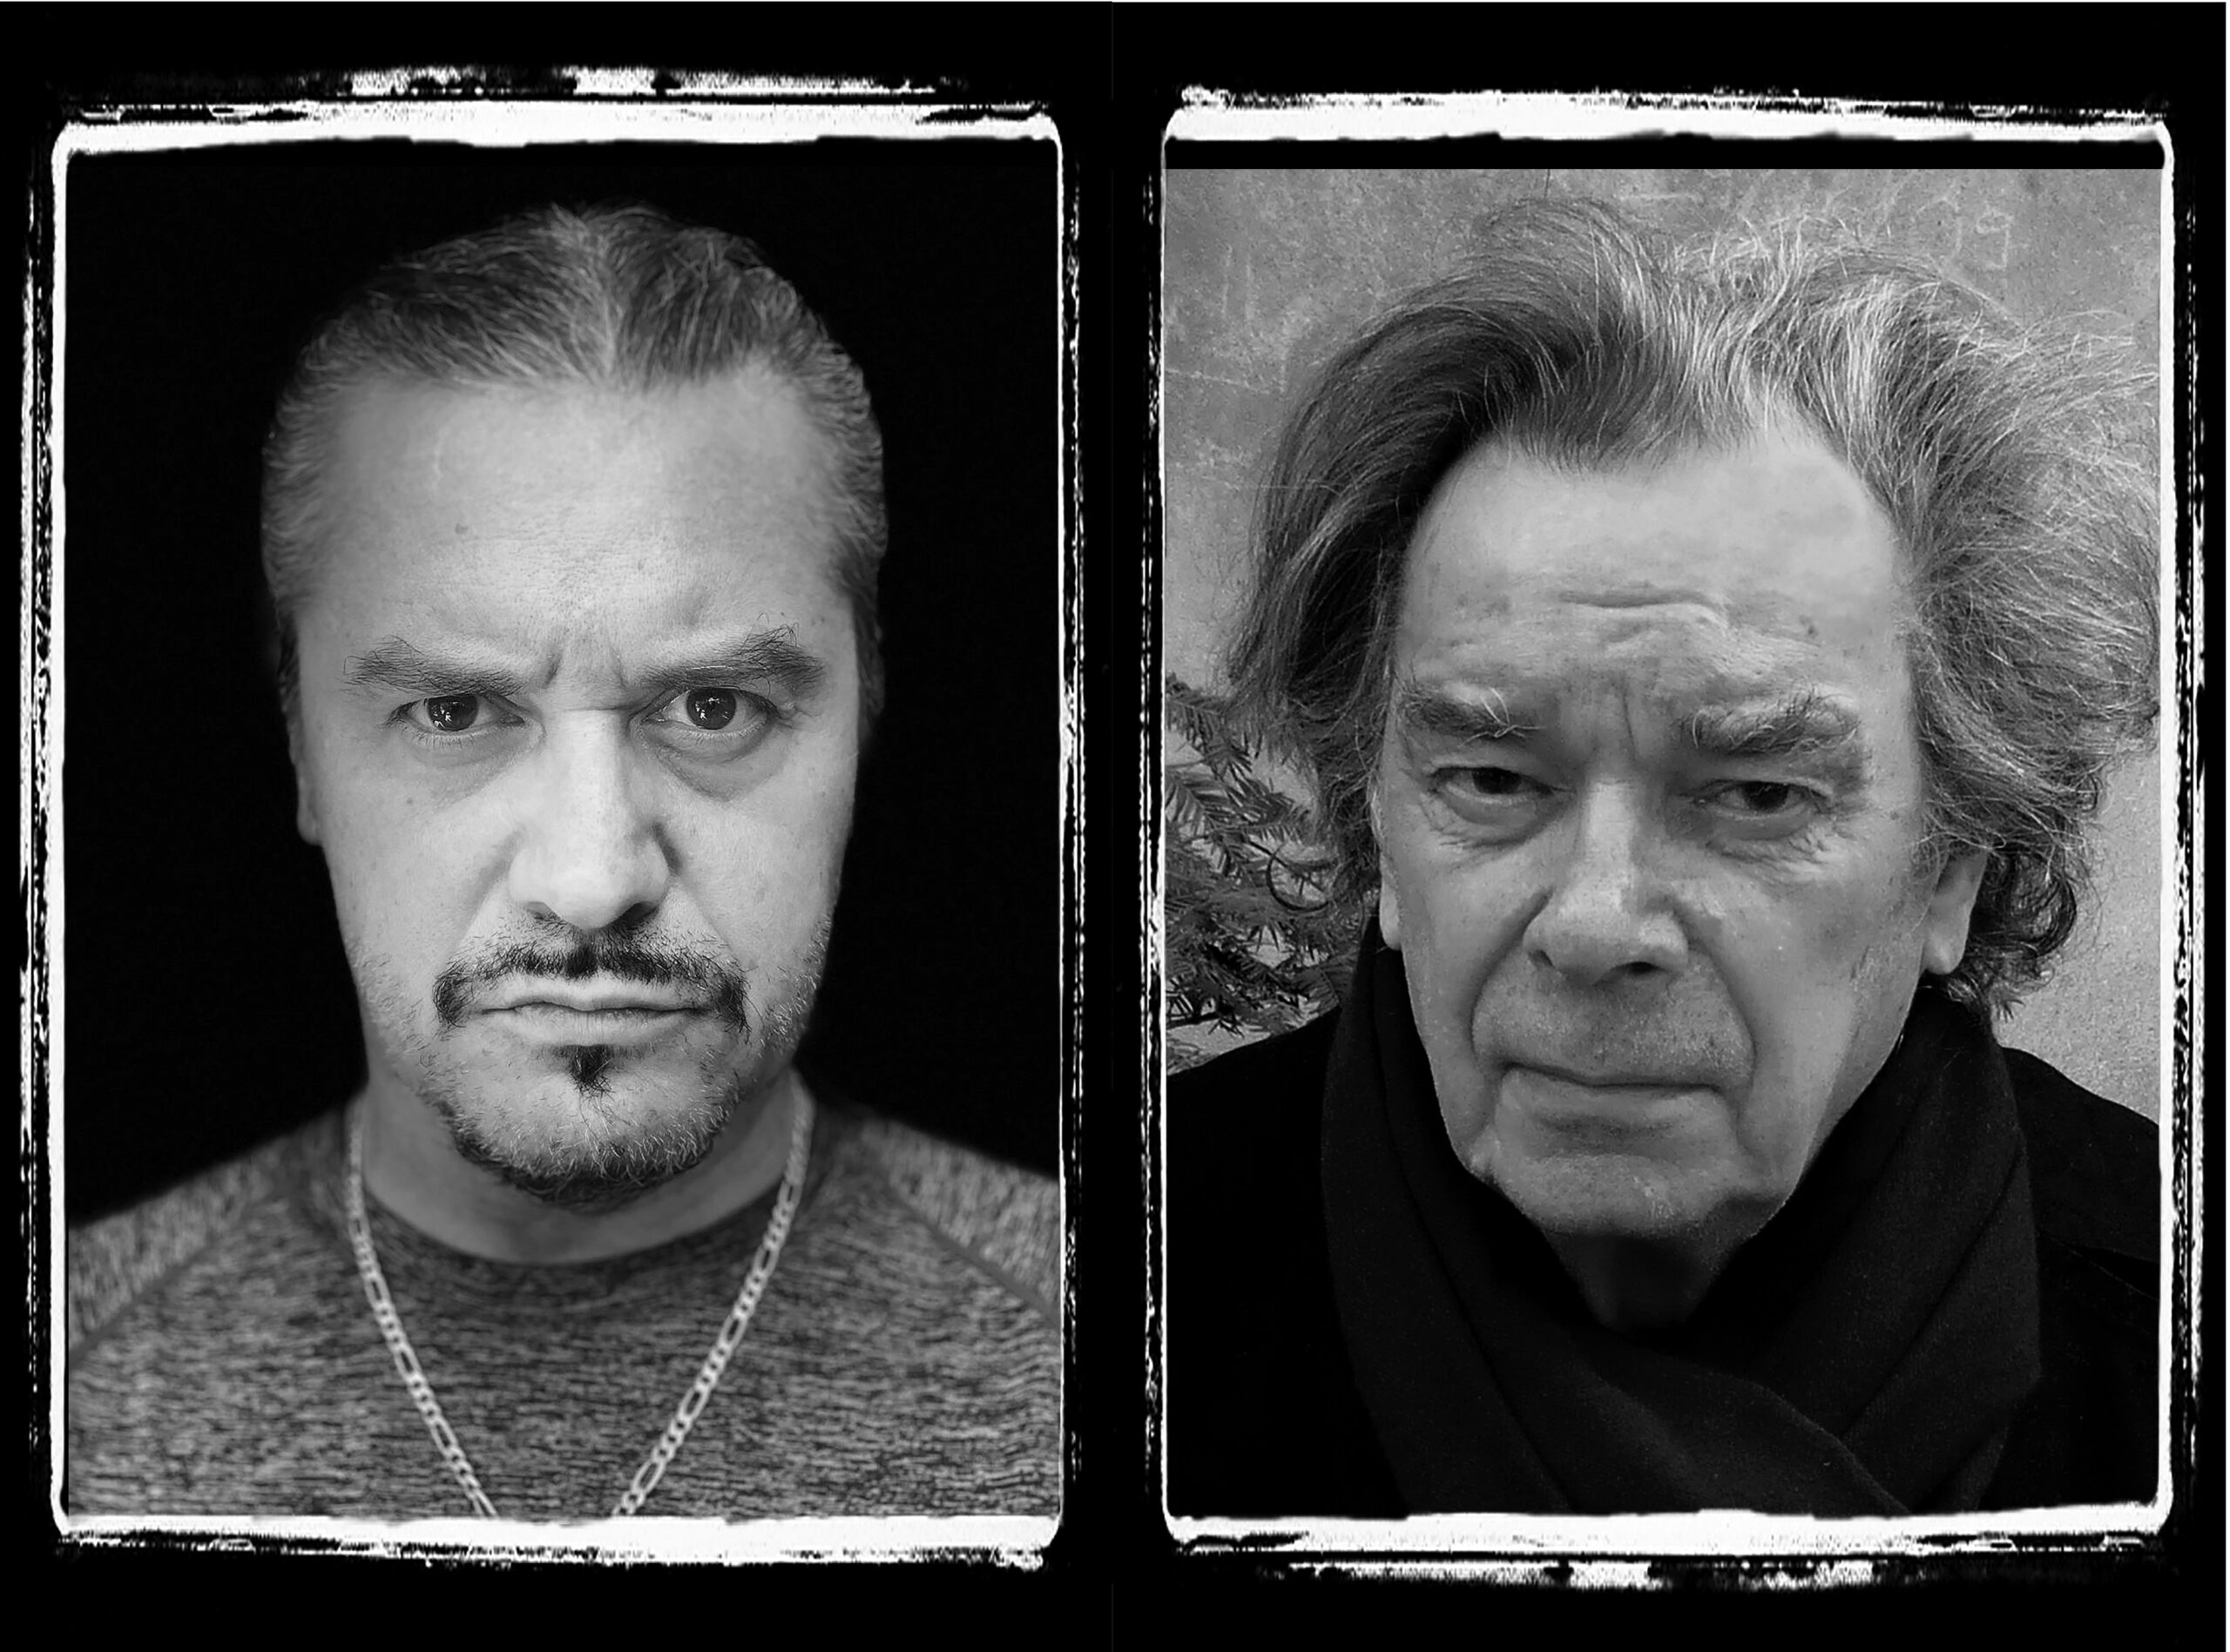 Mike Patton, Jean-Claude Vannier | Legendary Artists Team Up For Album 'Corpse Flower' – Out Fri 13 Sep + Release First Single, 'On Top Of The World'